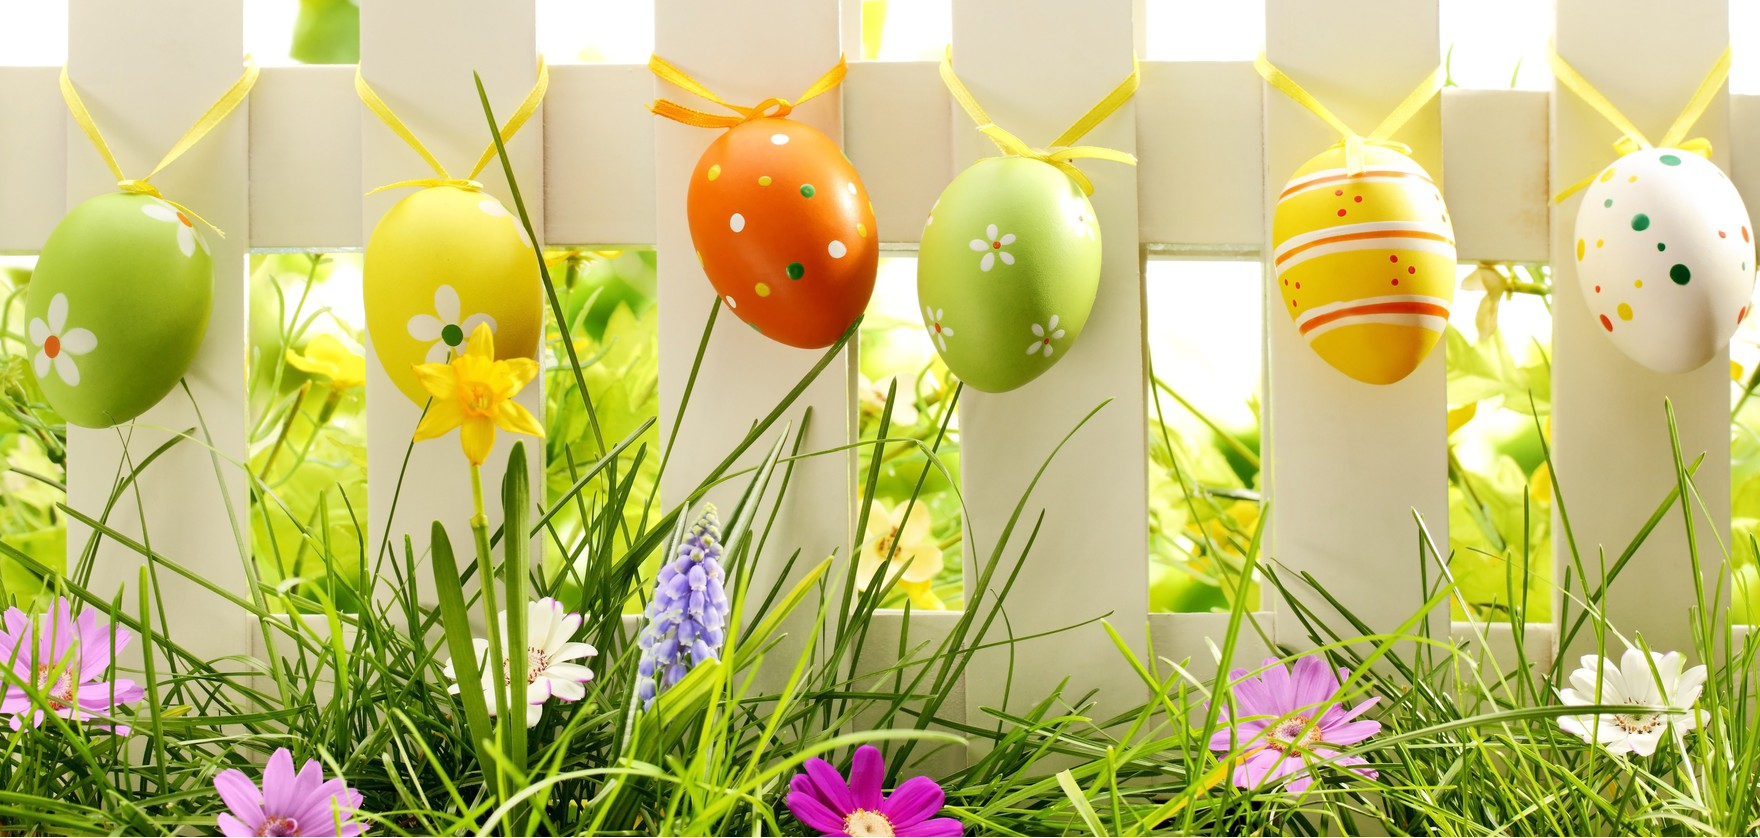 5 Innovative Ways to Use SMS Marketing for Easter Promotion